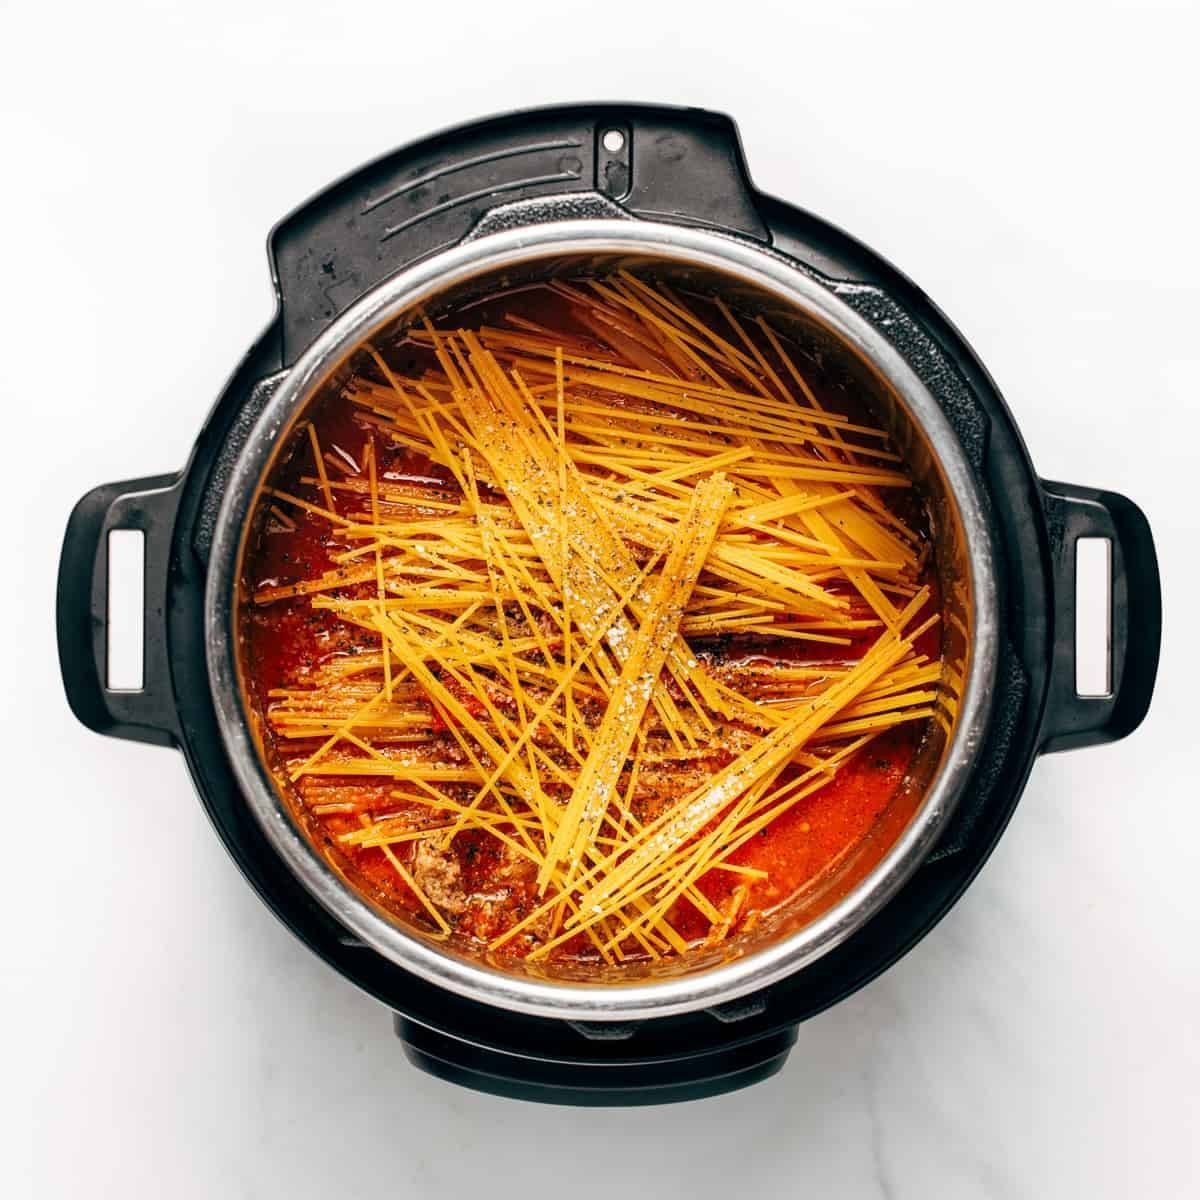 Spaghetti with ingredients in the instant pot